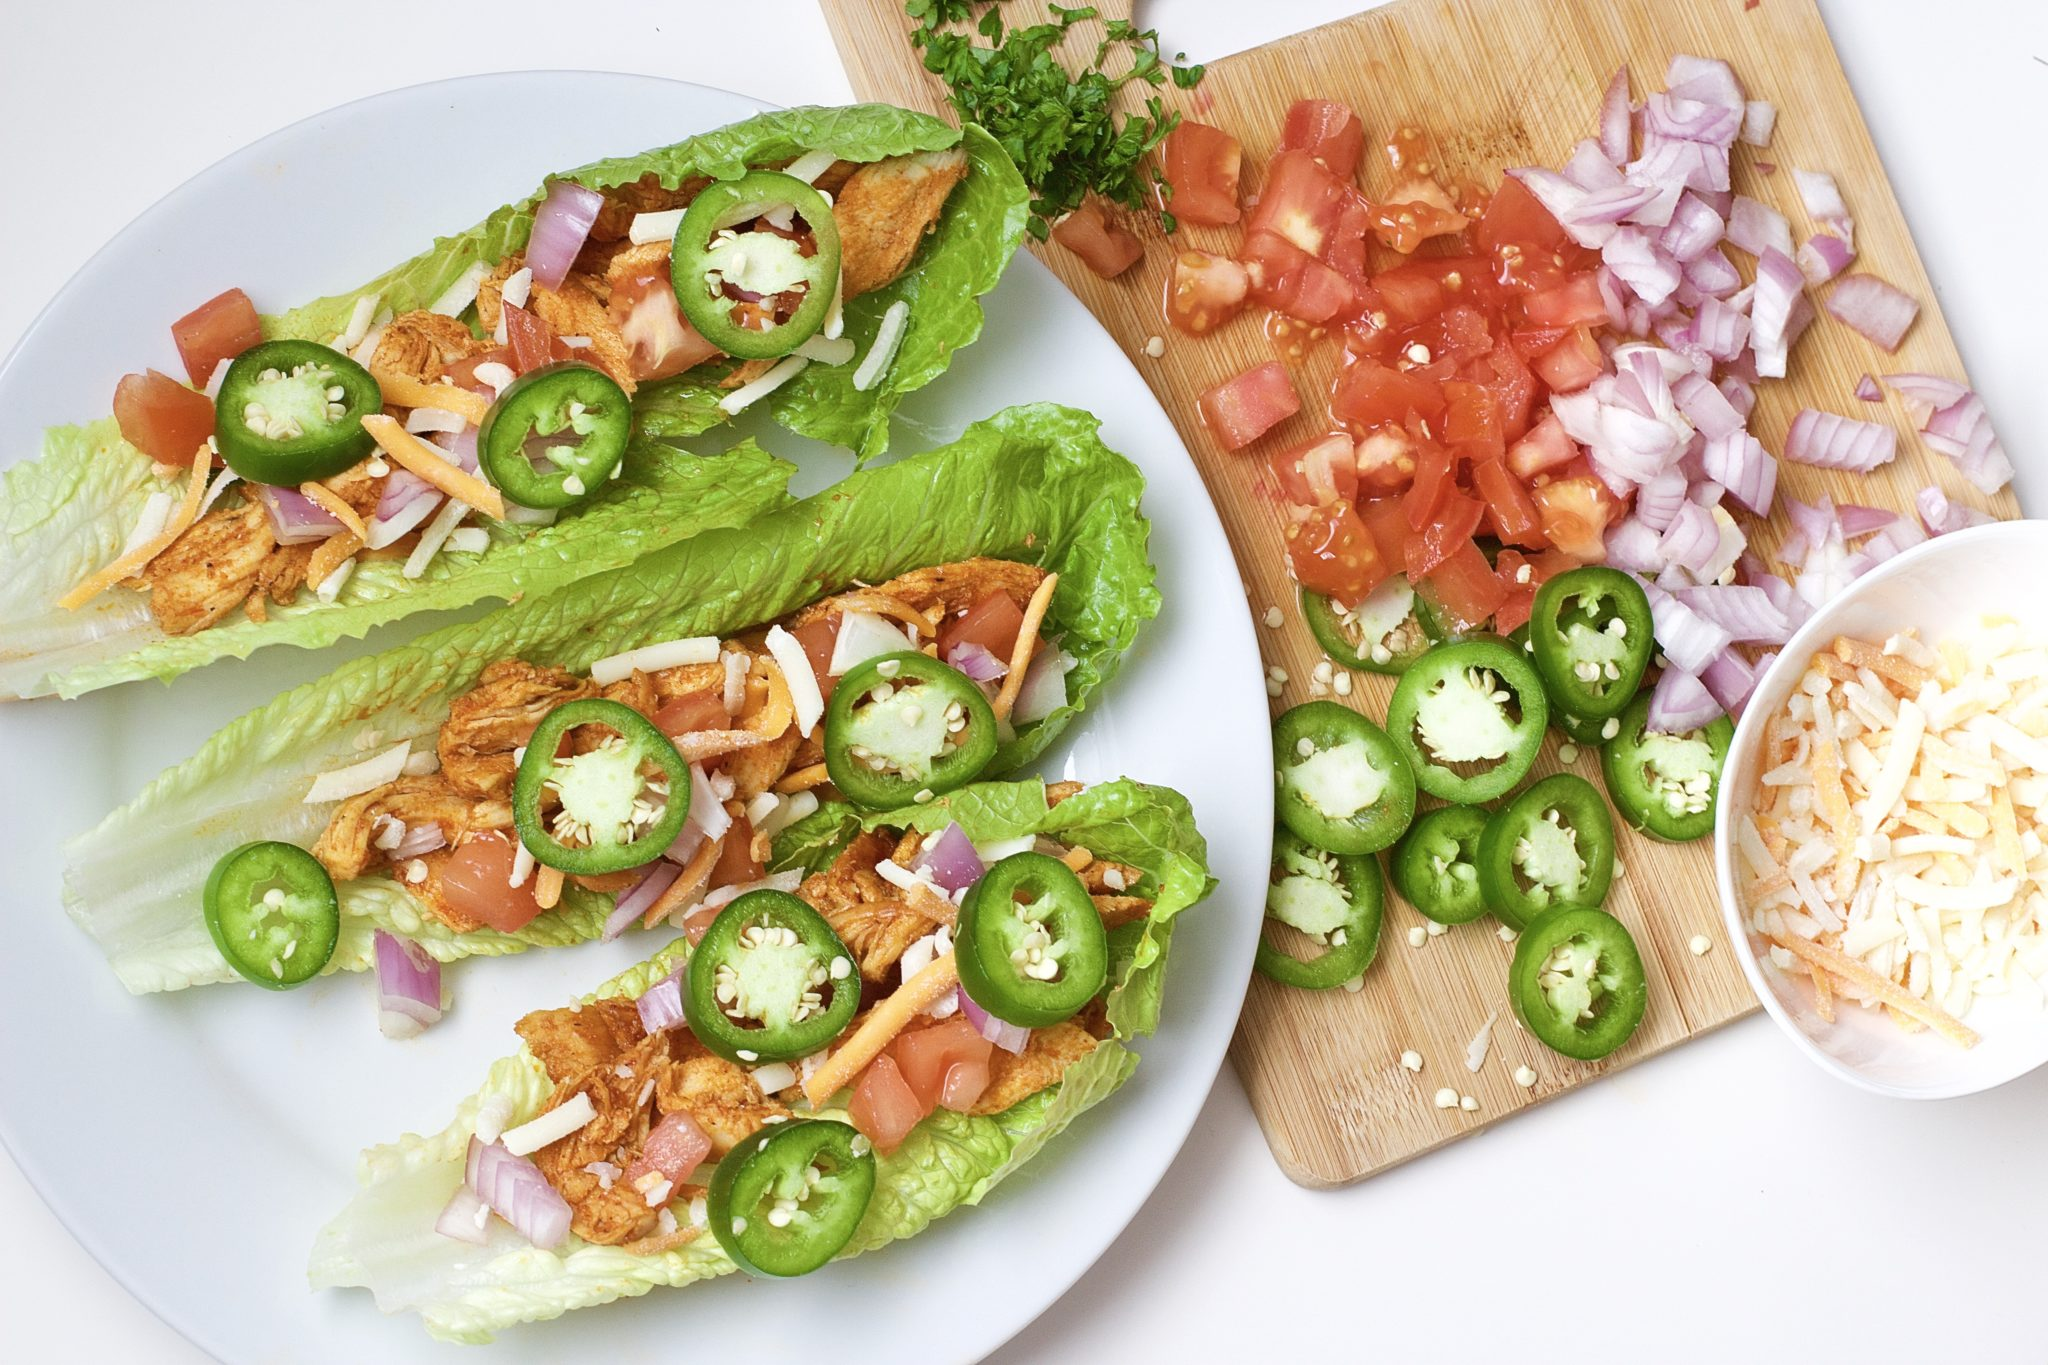 Light, crispy and delicious Buffalo Chicken Lettuce Tacos are made in 20 minutes or less. An easy, gluten-free, low carb, keto and paleo recipe. Enjoy the wraps as an appetizer or main dish. Mexican Recipes | Lettuce Tacos | Chicken Tacos | Spicy | Hot Sauce | Summer Recipe | Game Night | Date Night | Dinner | Low Carb | Ketogenic | Keto | Weight Loss | Buffalo Chicken | Paleo | Easy Dinner | Salad | Romain Lettuce | Lettuce Taco Shells | Lettuce Wraps |